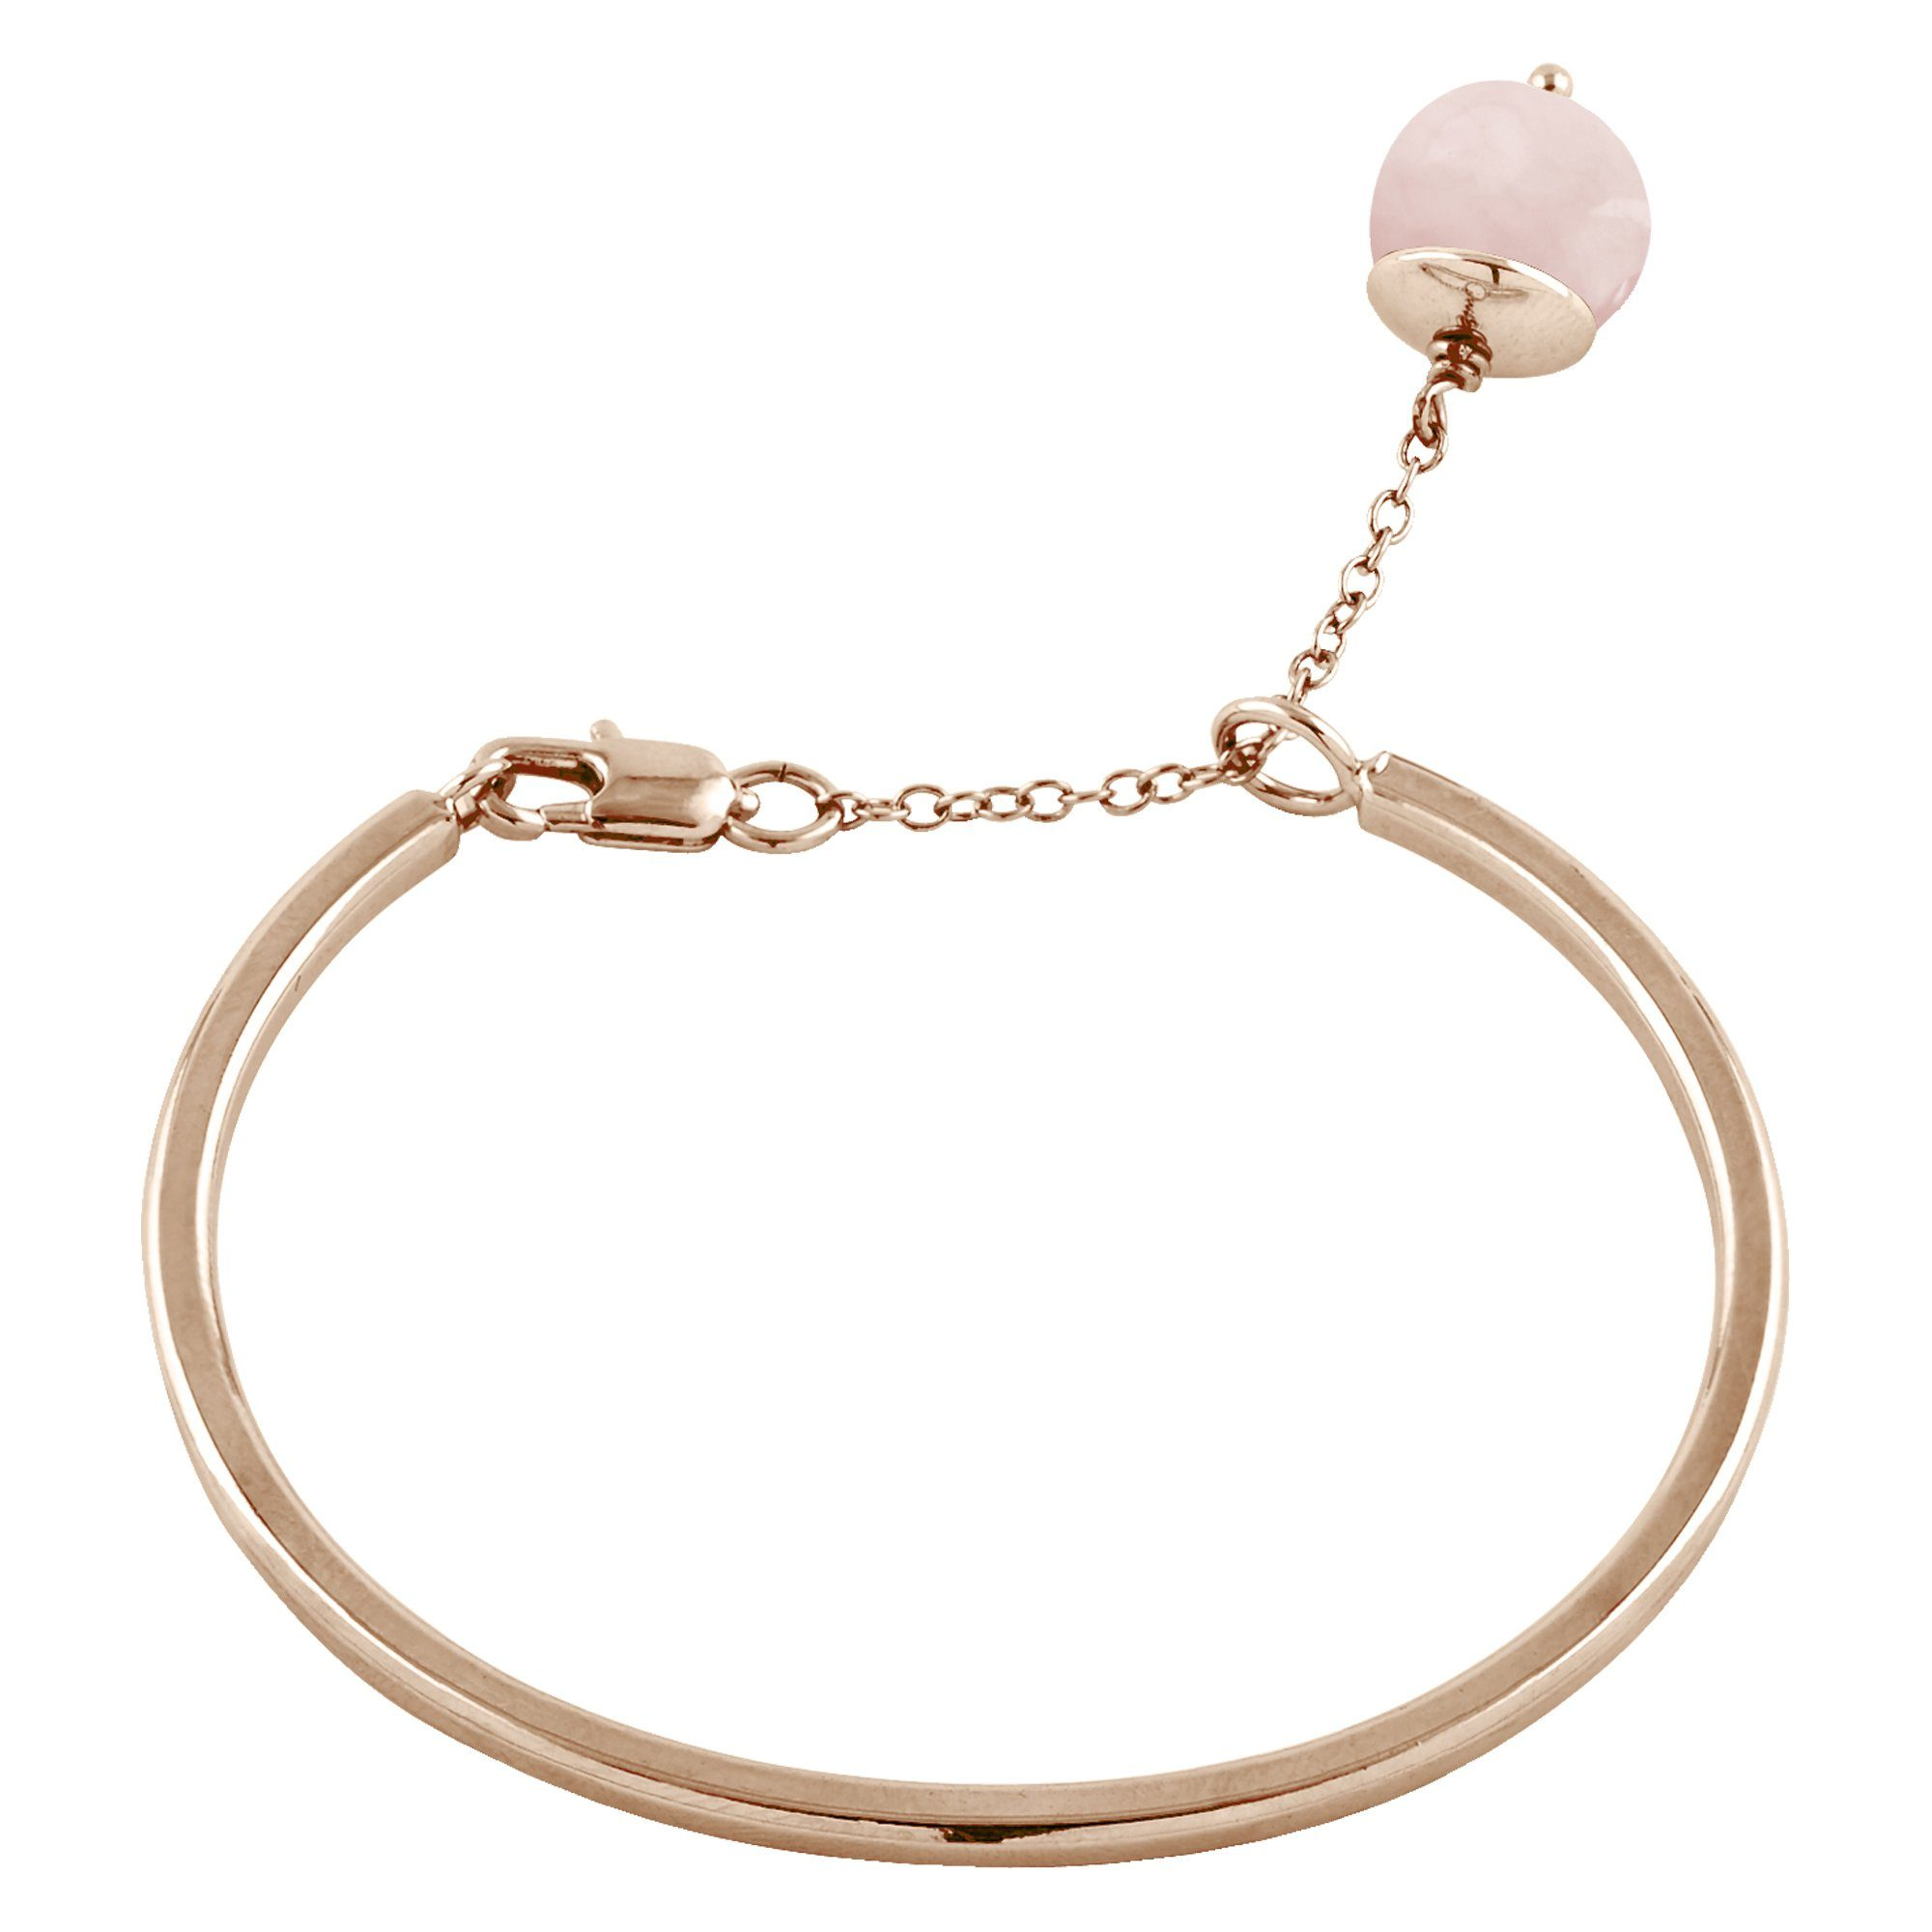 Buckley London Armschmuck »Messing rosévergoldet mit Rosenquarz«